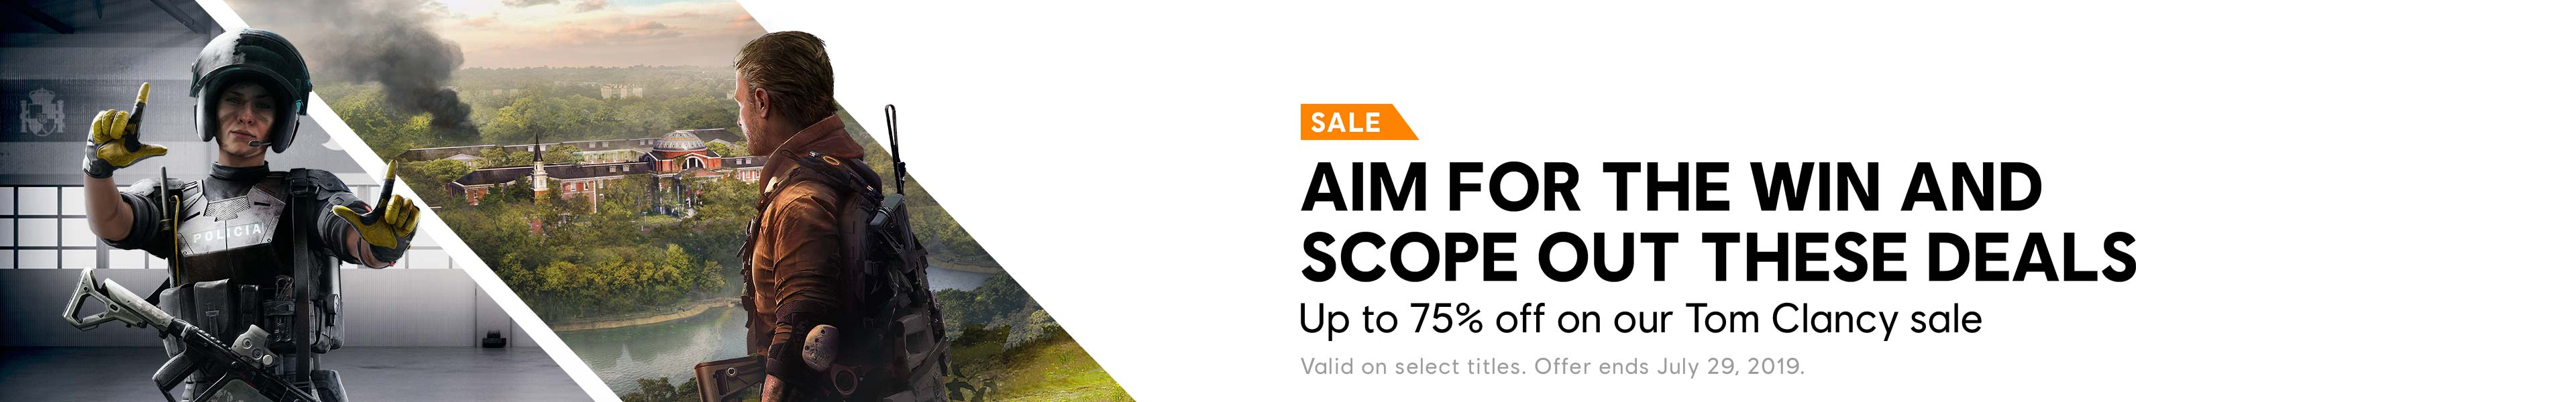 Tom Clancy Sale Category banner